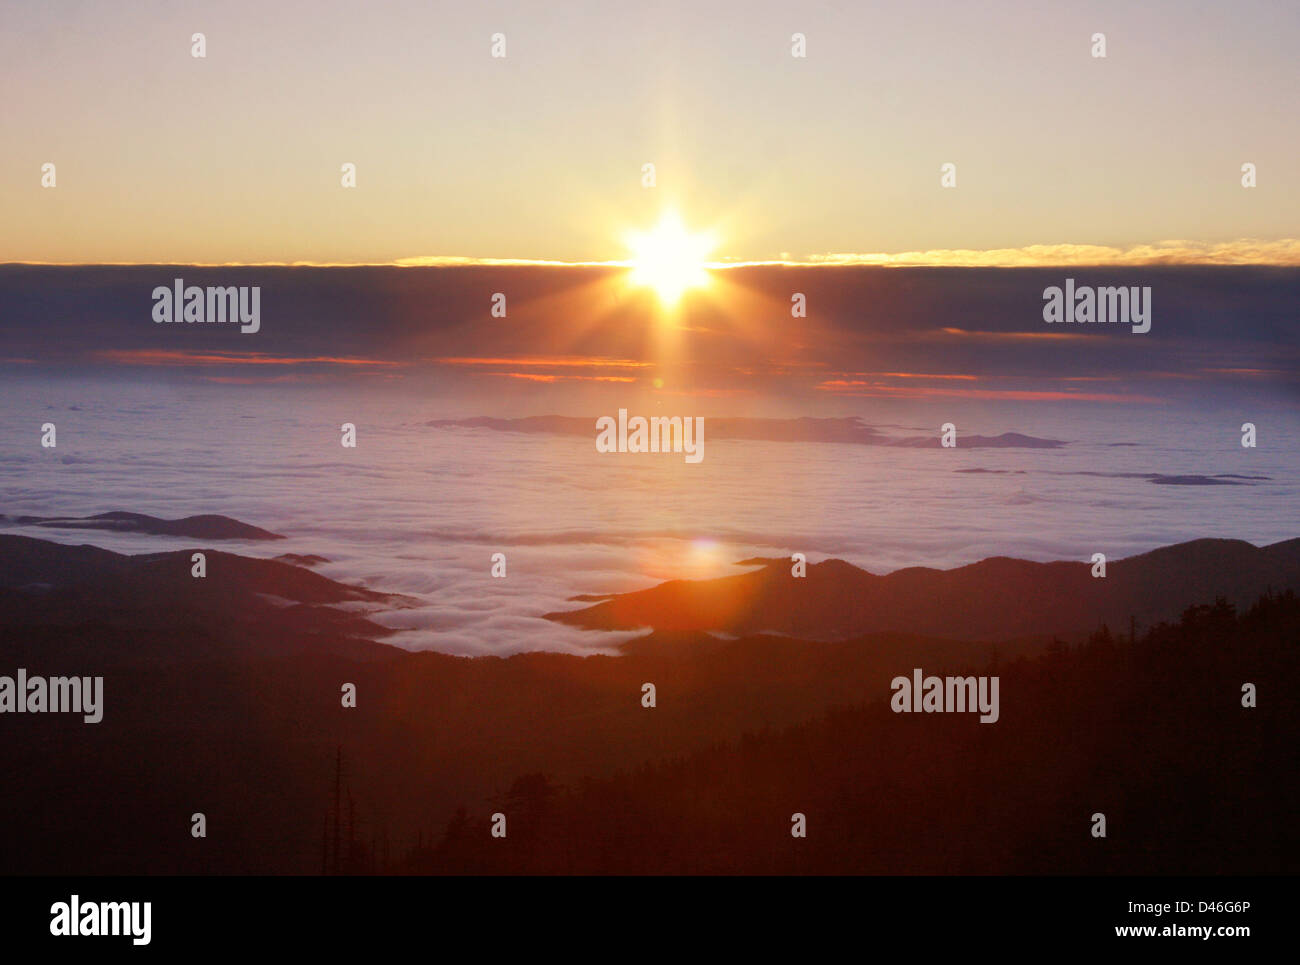 Sunrising over the clouds on the Blue Ridge Parkway - Stock Image